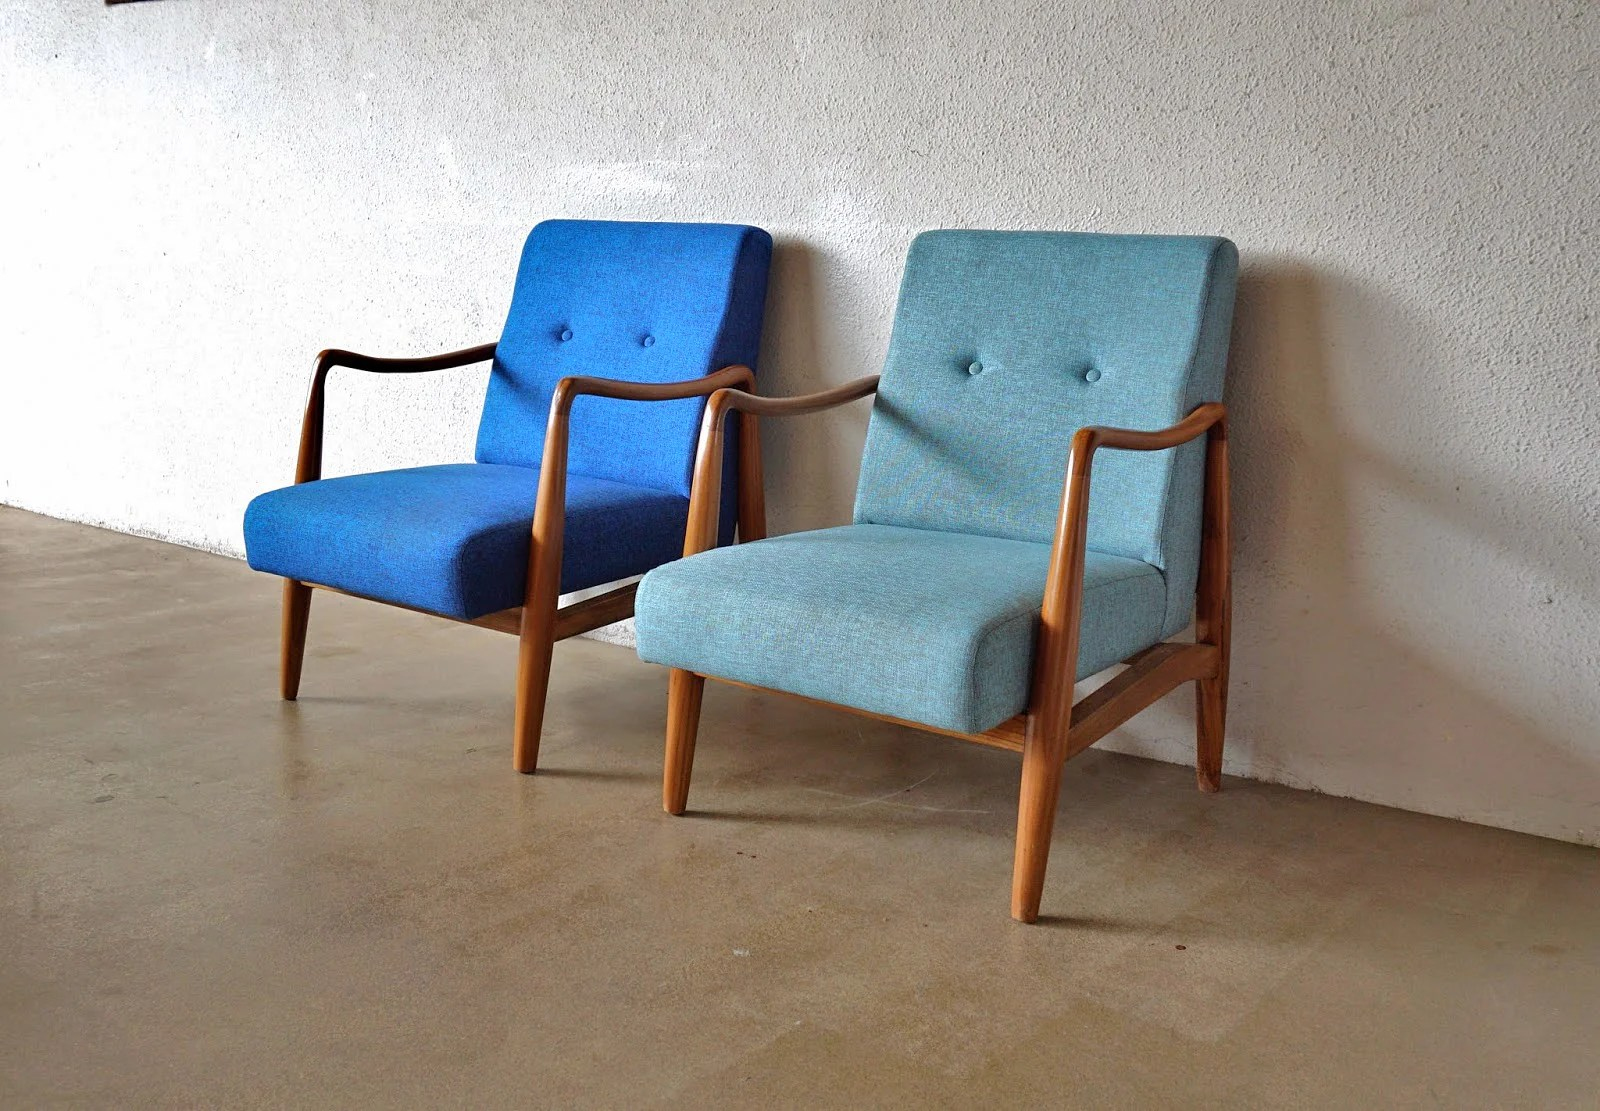 Designer Chairs Used Sell Your Old Furniture At These Shops Home Decor Singapore